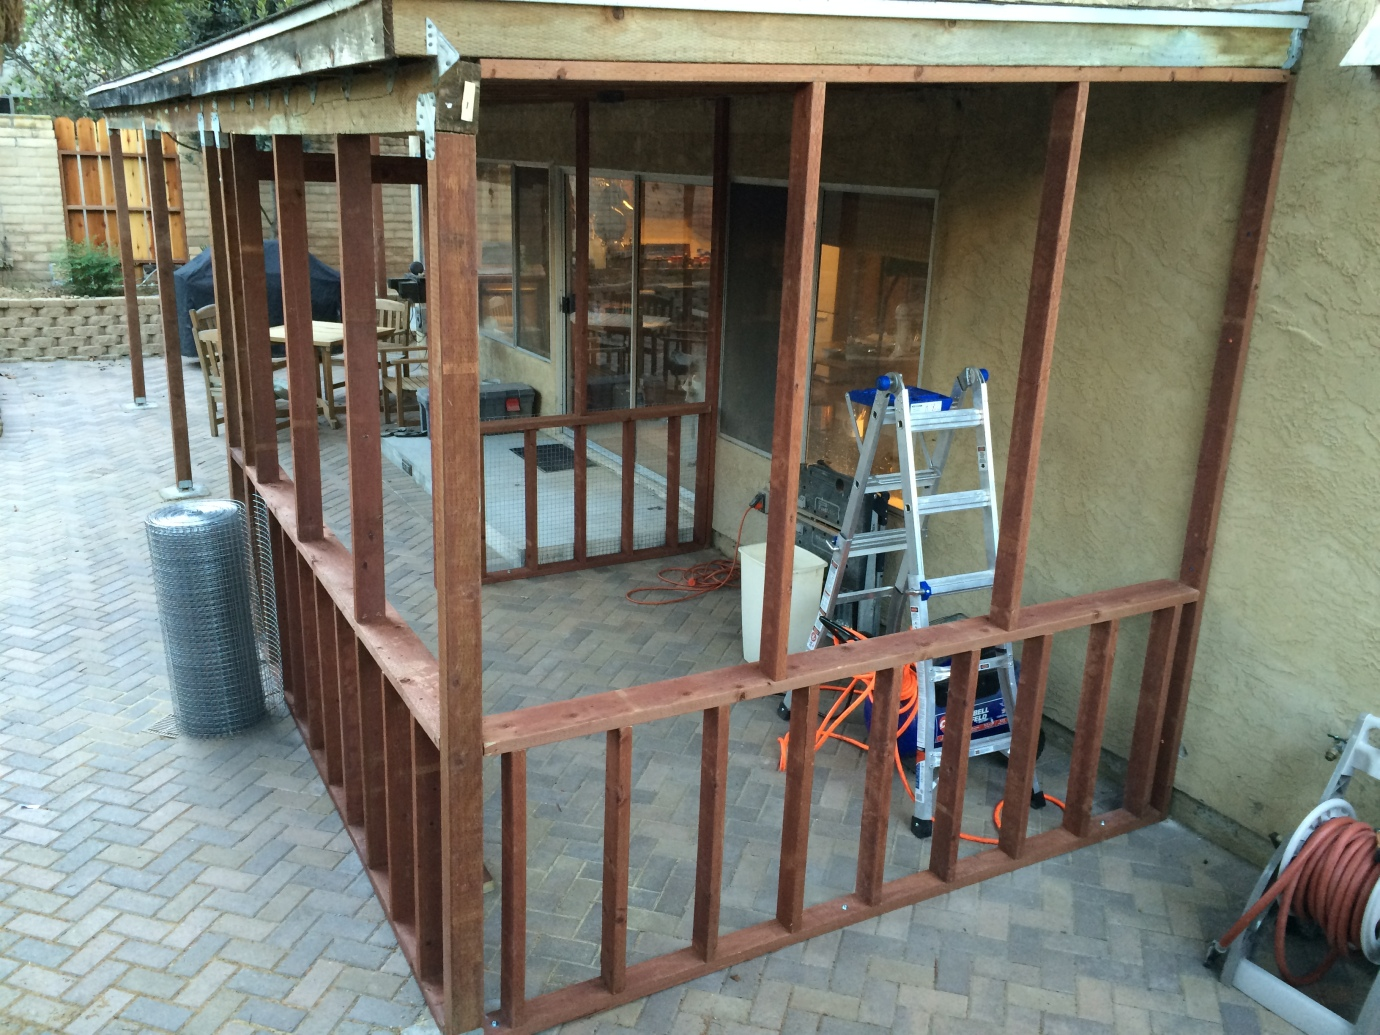 Building A Catio Learning To Love Cats And Keeping Them Happy Frank S Home Remodeling Project